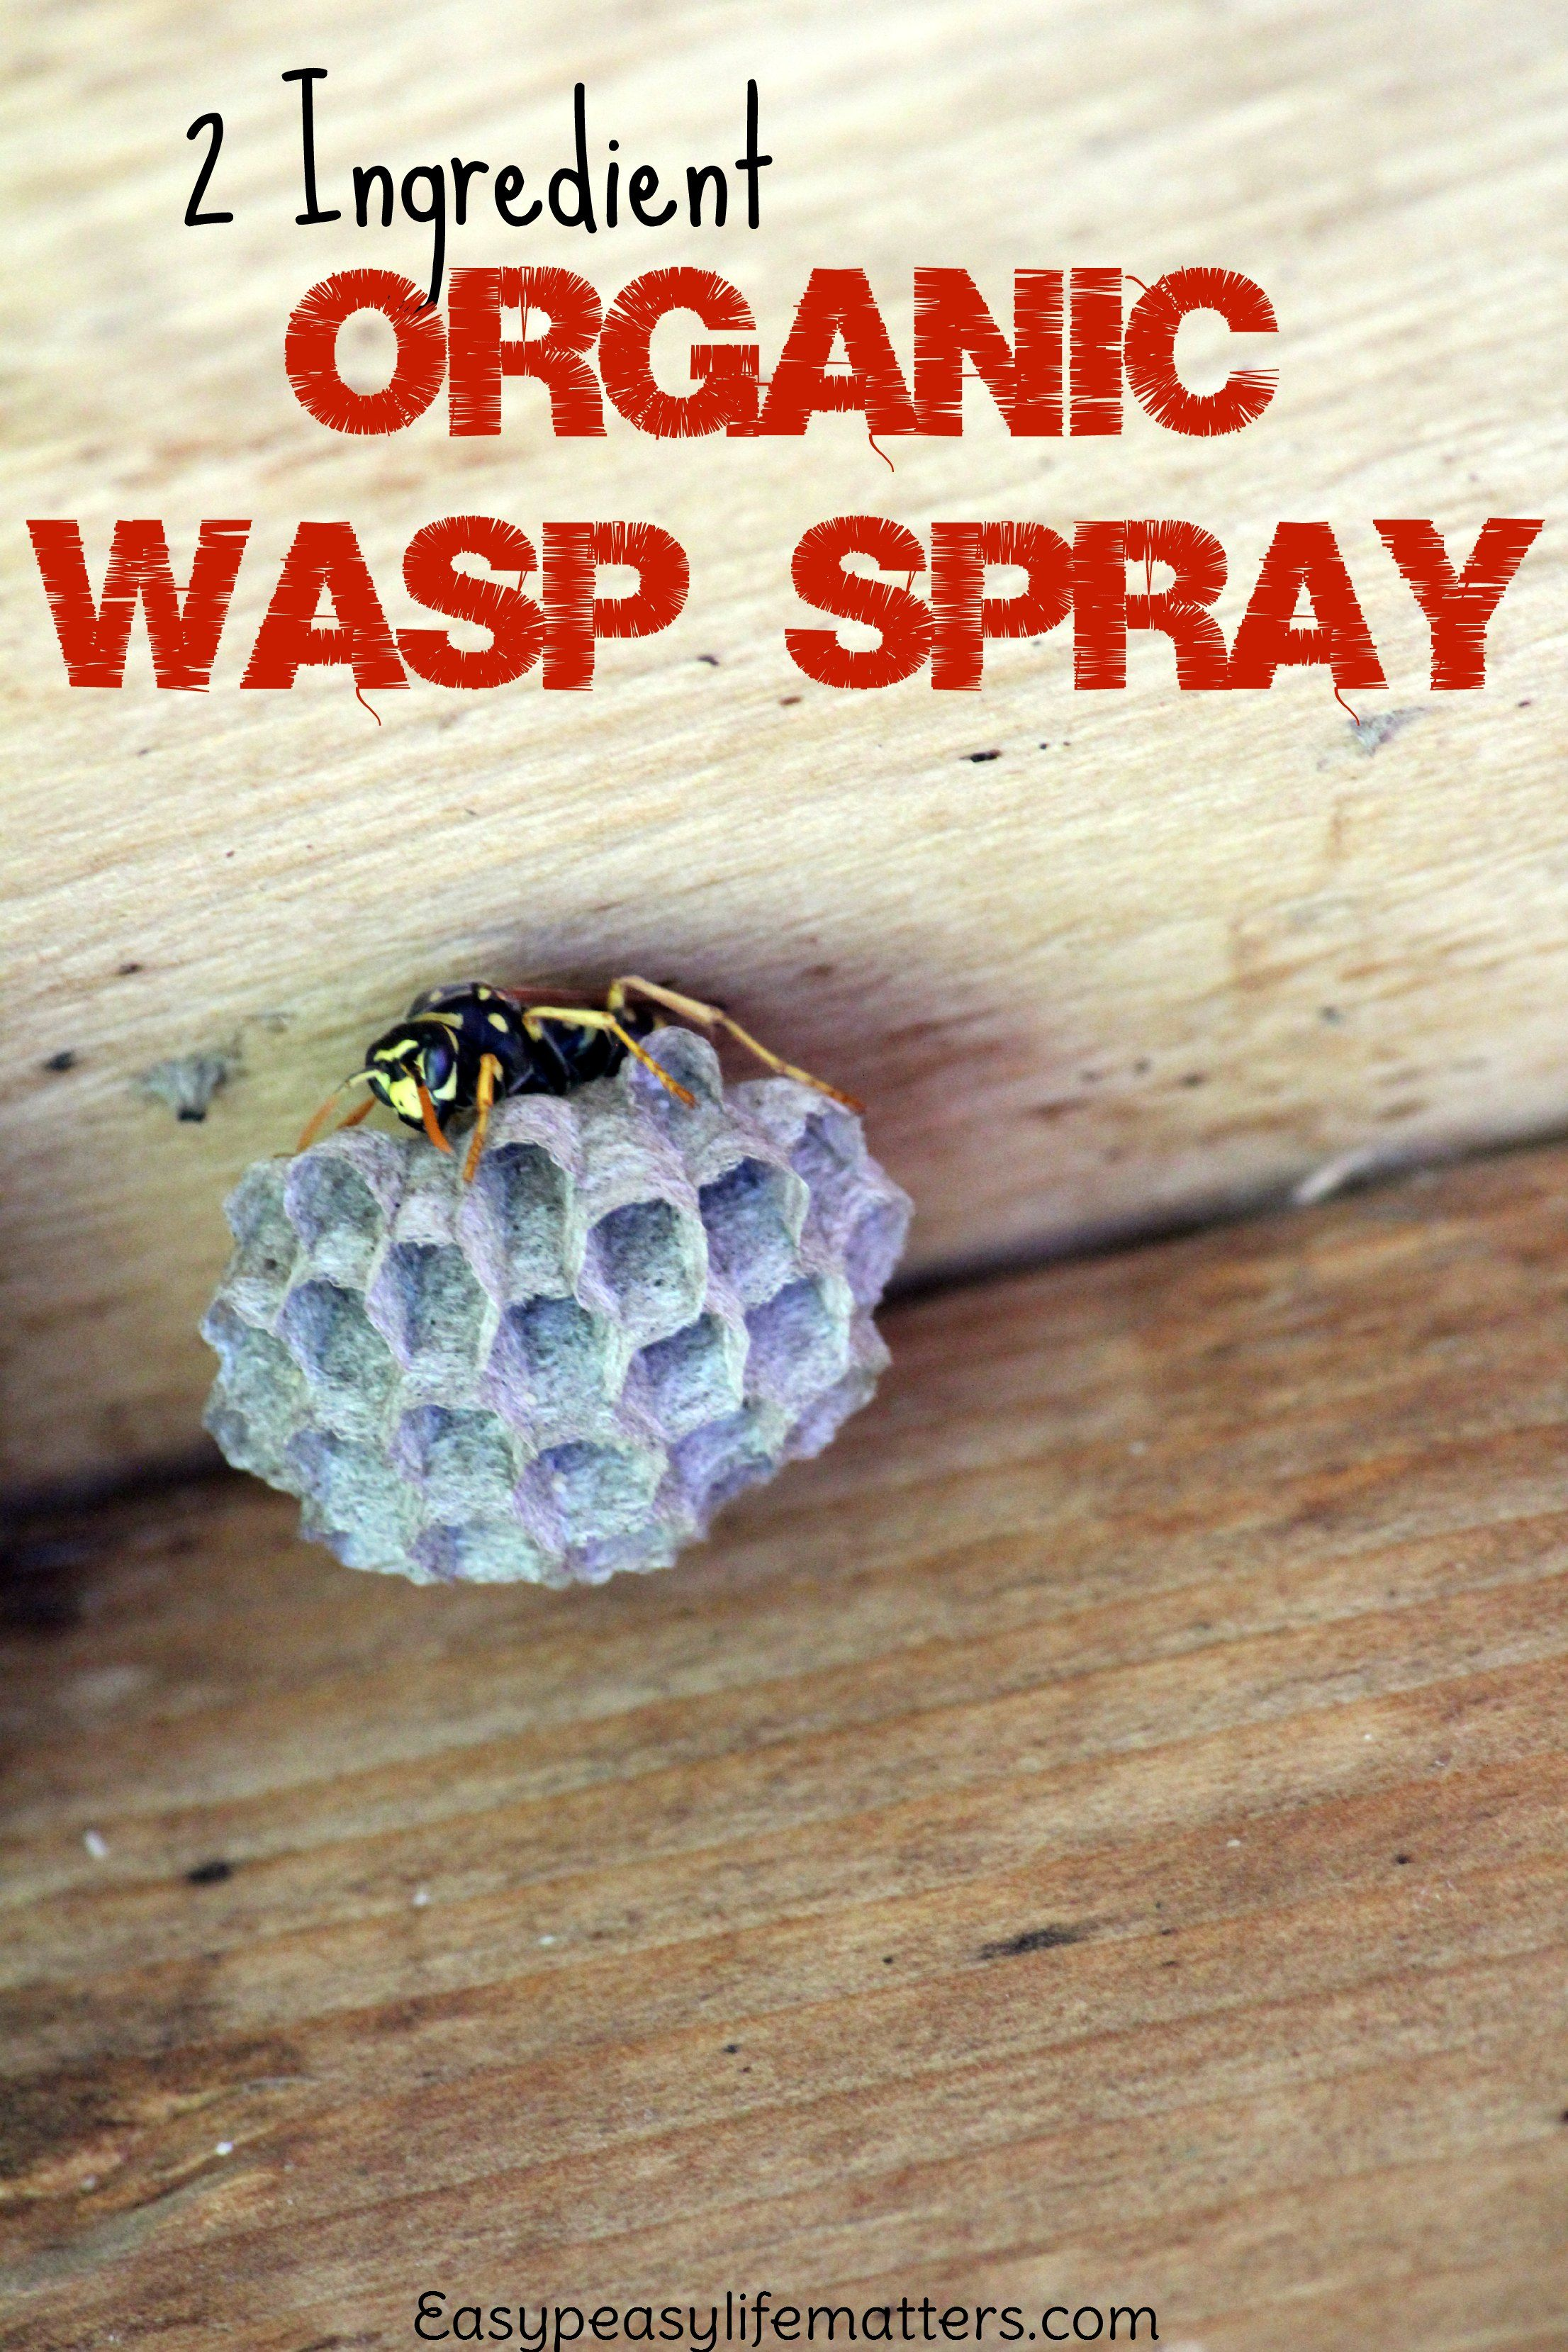 how to kill ground bees with vinegar